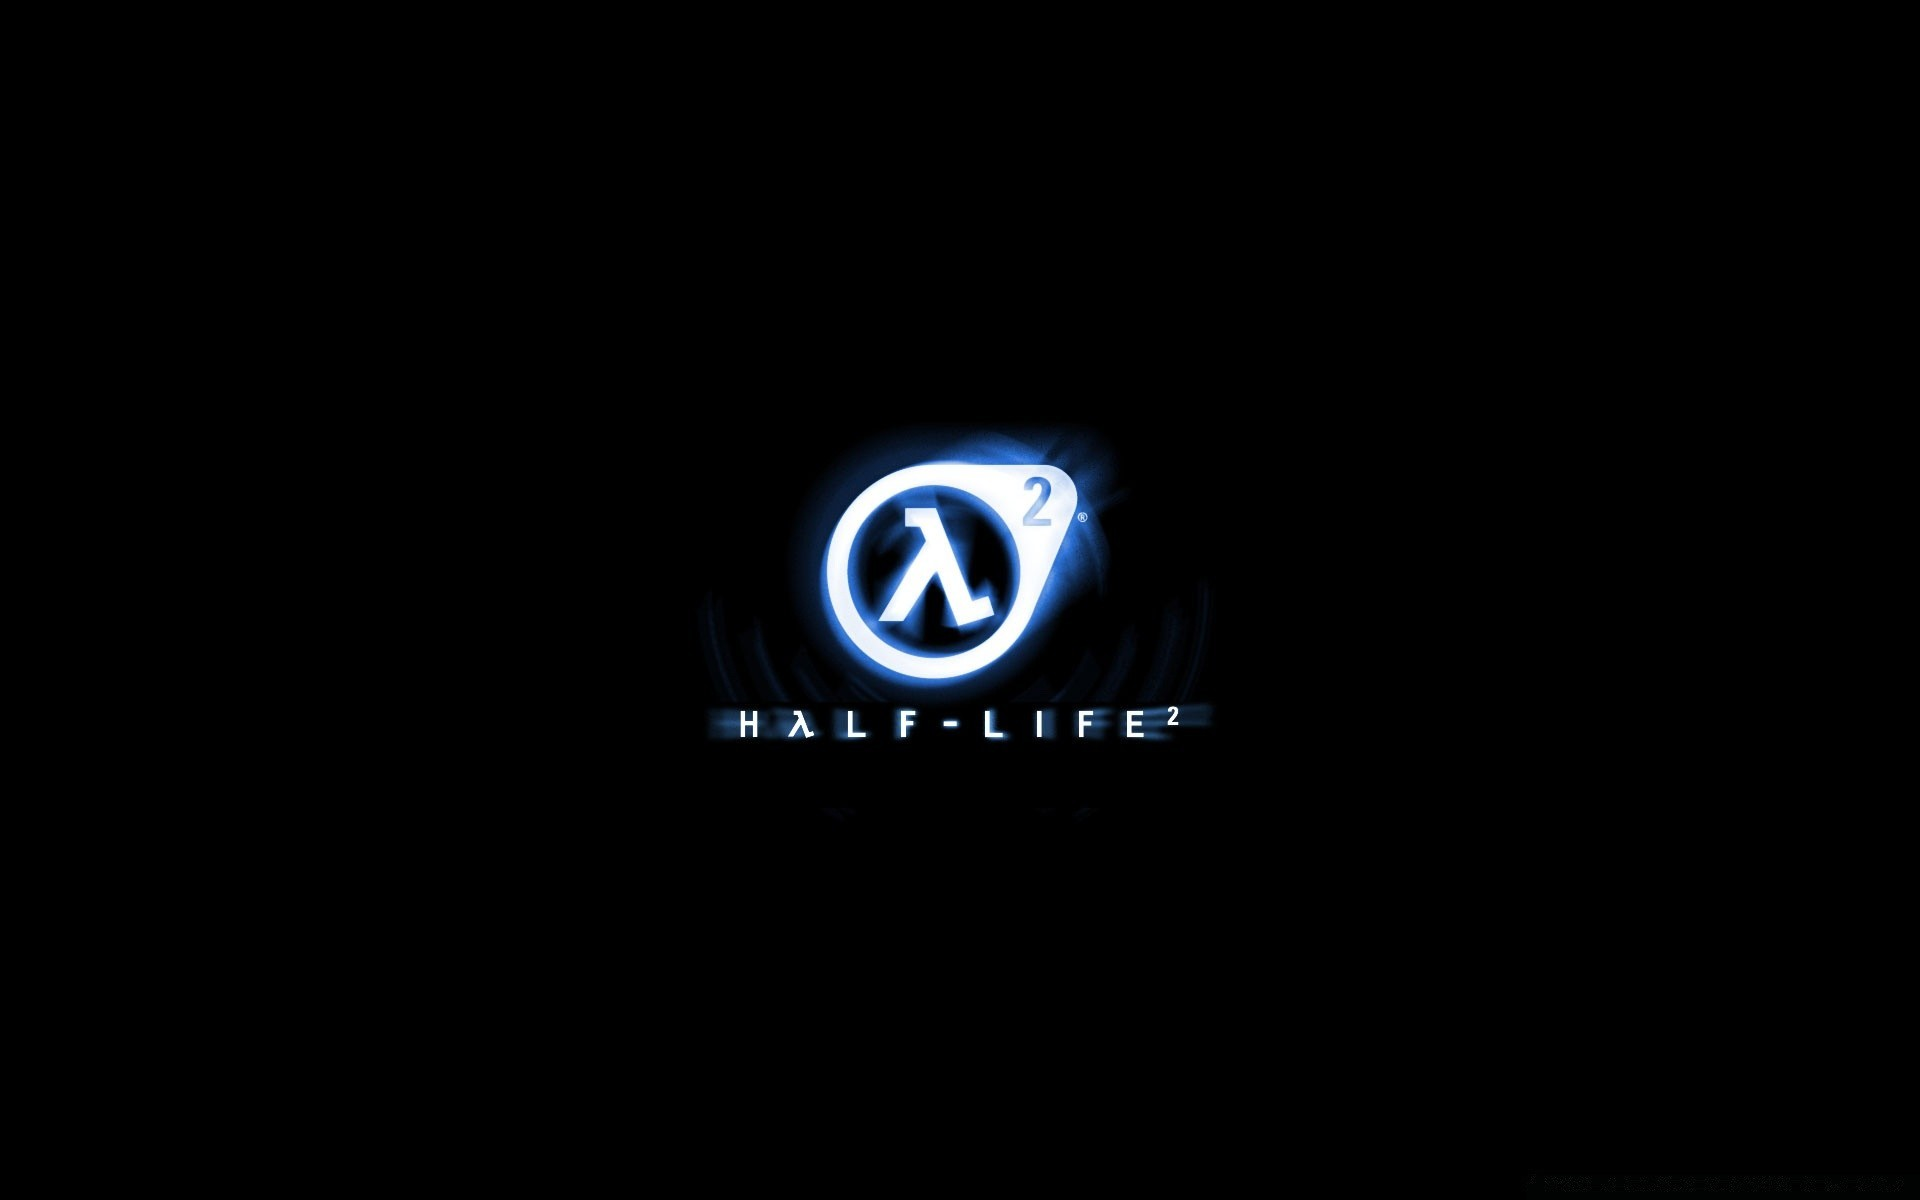 Half-Life 2 - 4 - Android wallpapers